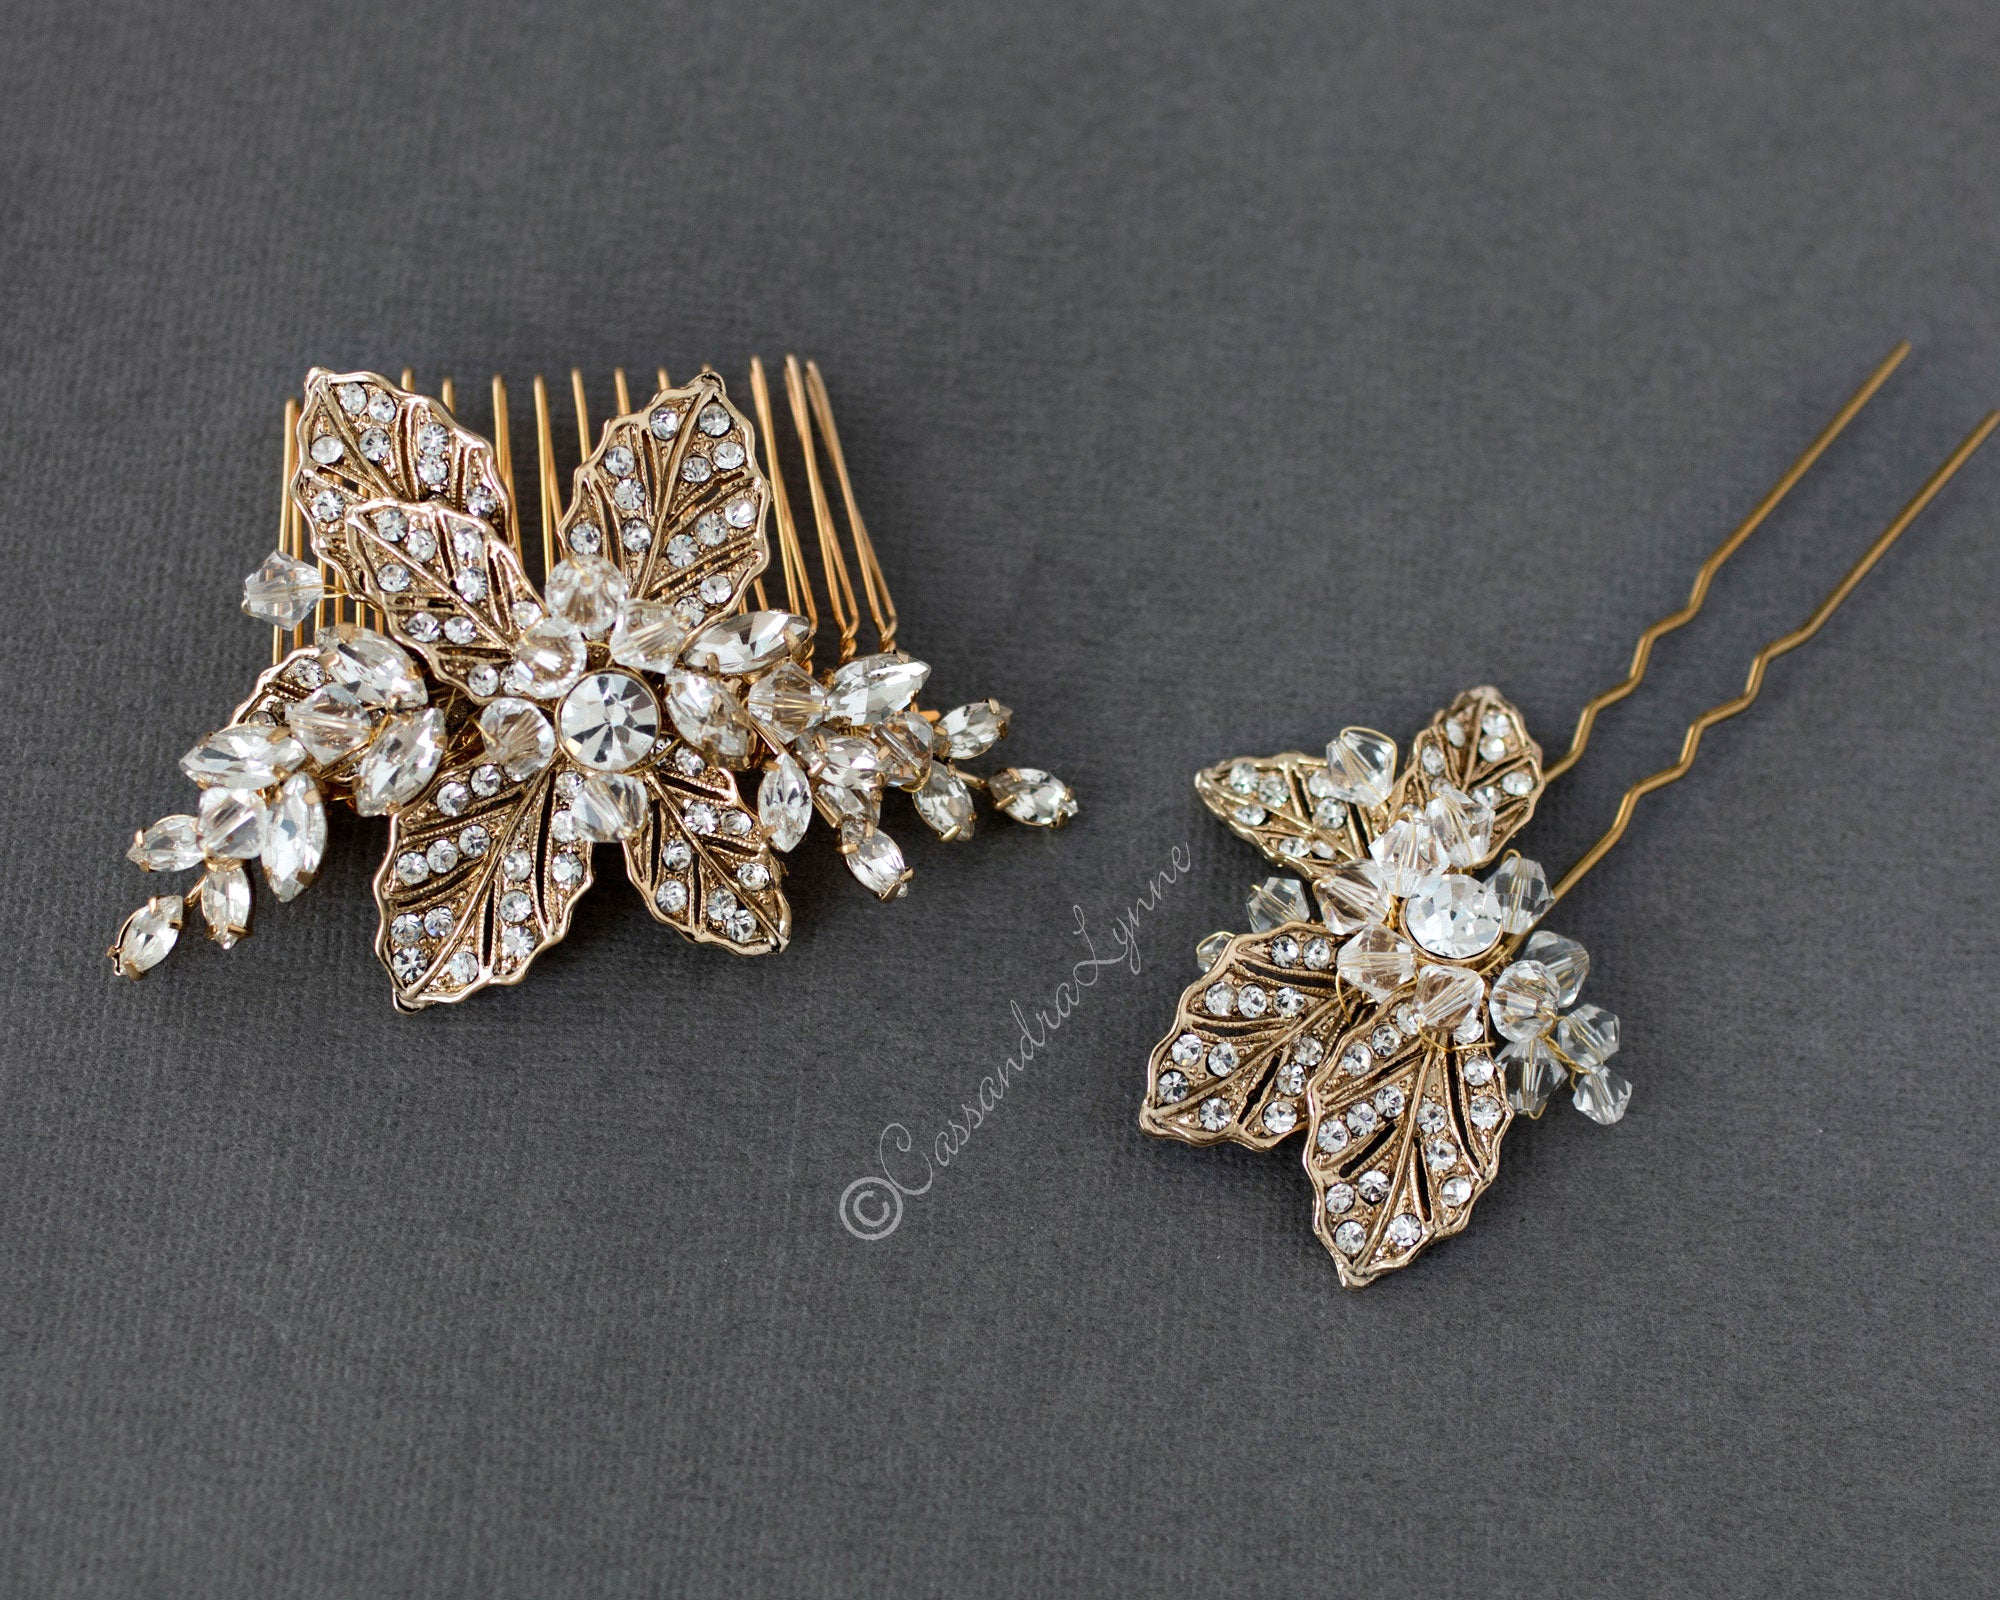 Gold Bridal Comb and Pin Set with Swarovski Crystals OOAK